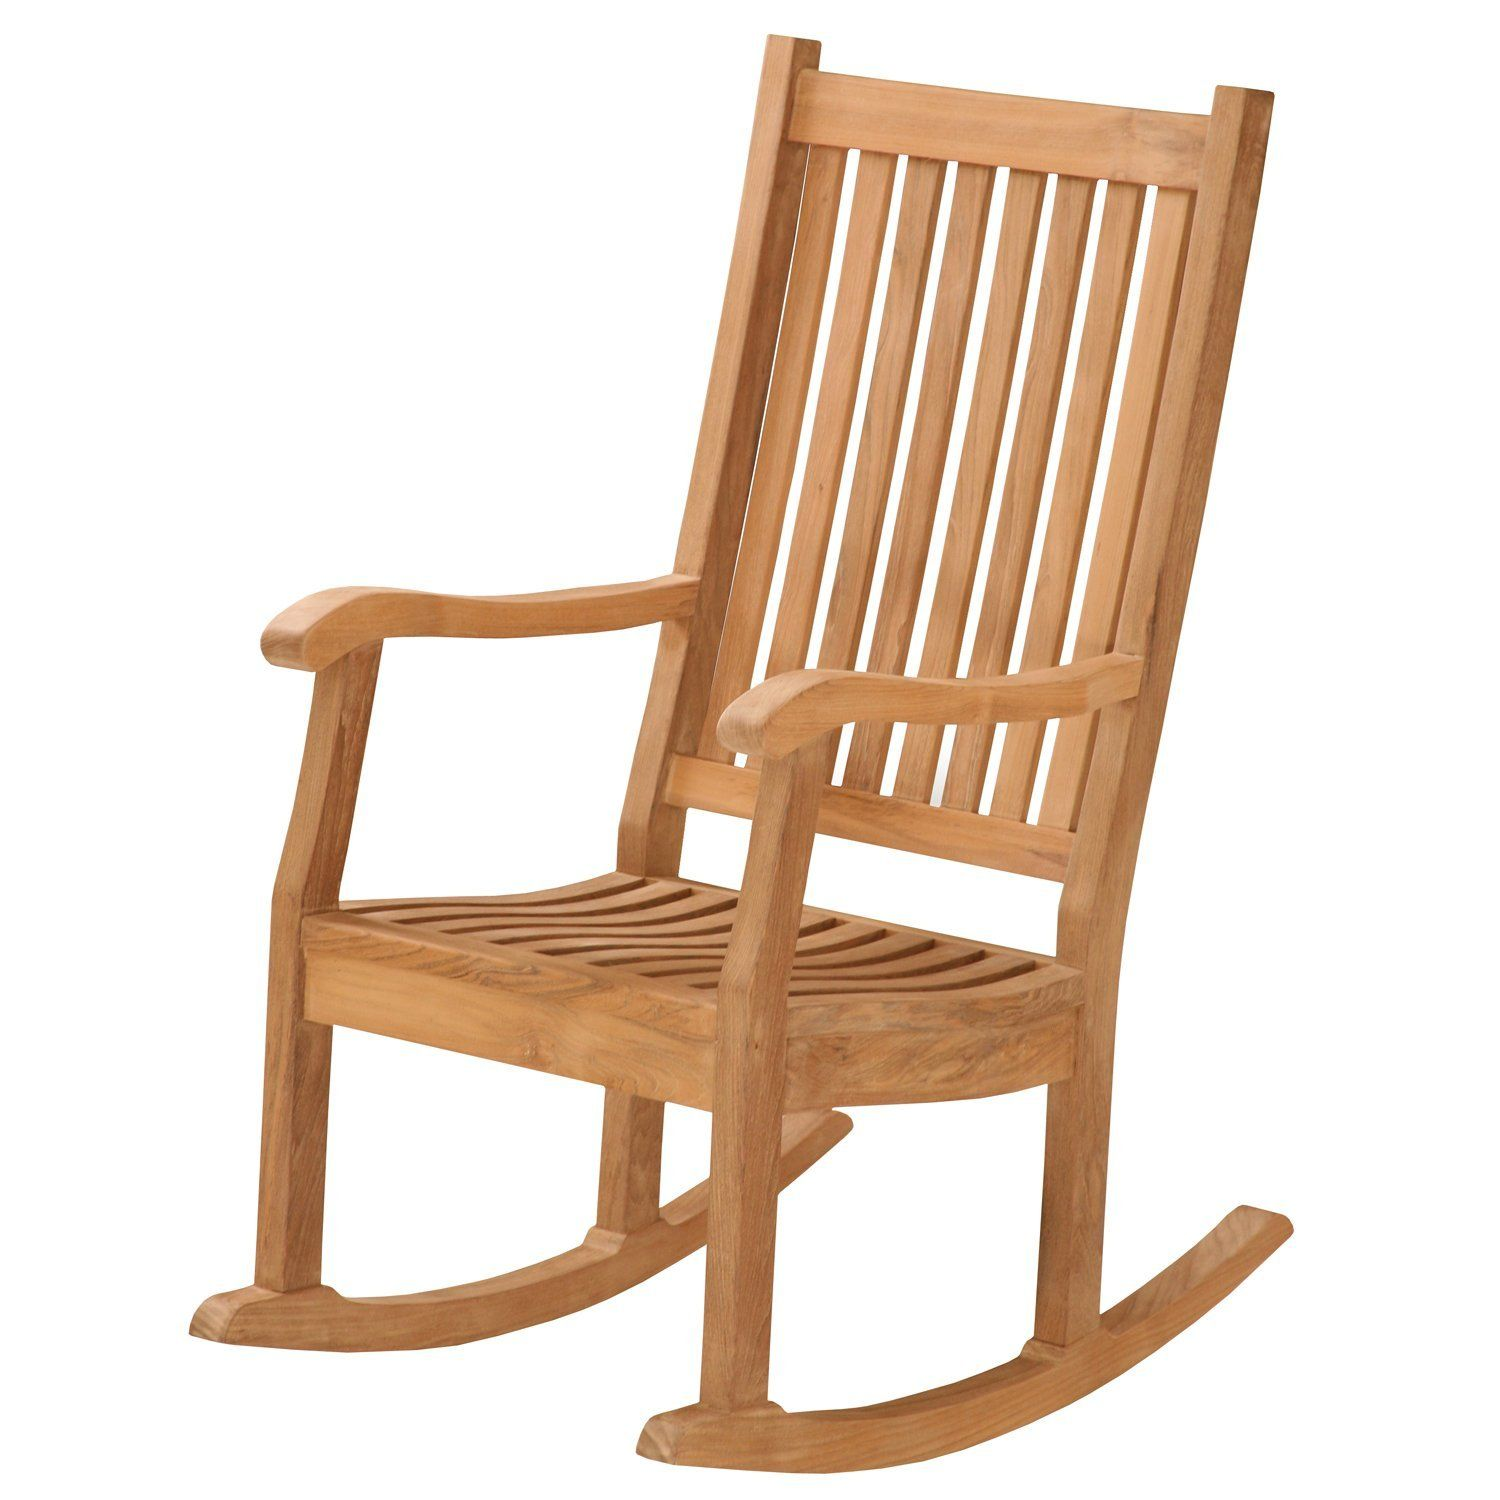 Rocking Chairs Weather Resistant Teakwood Outdoor Rocking Chairs Are